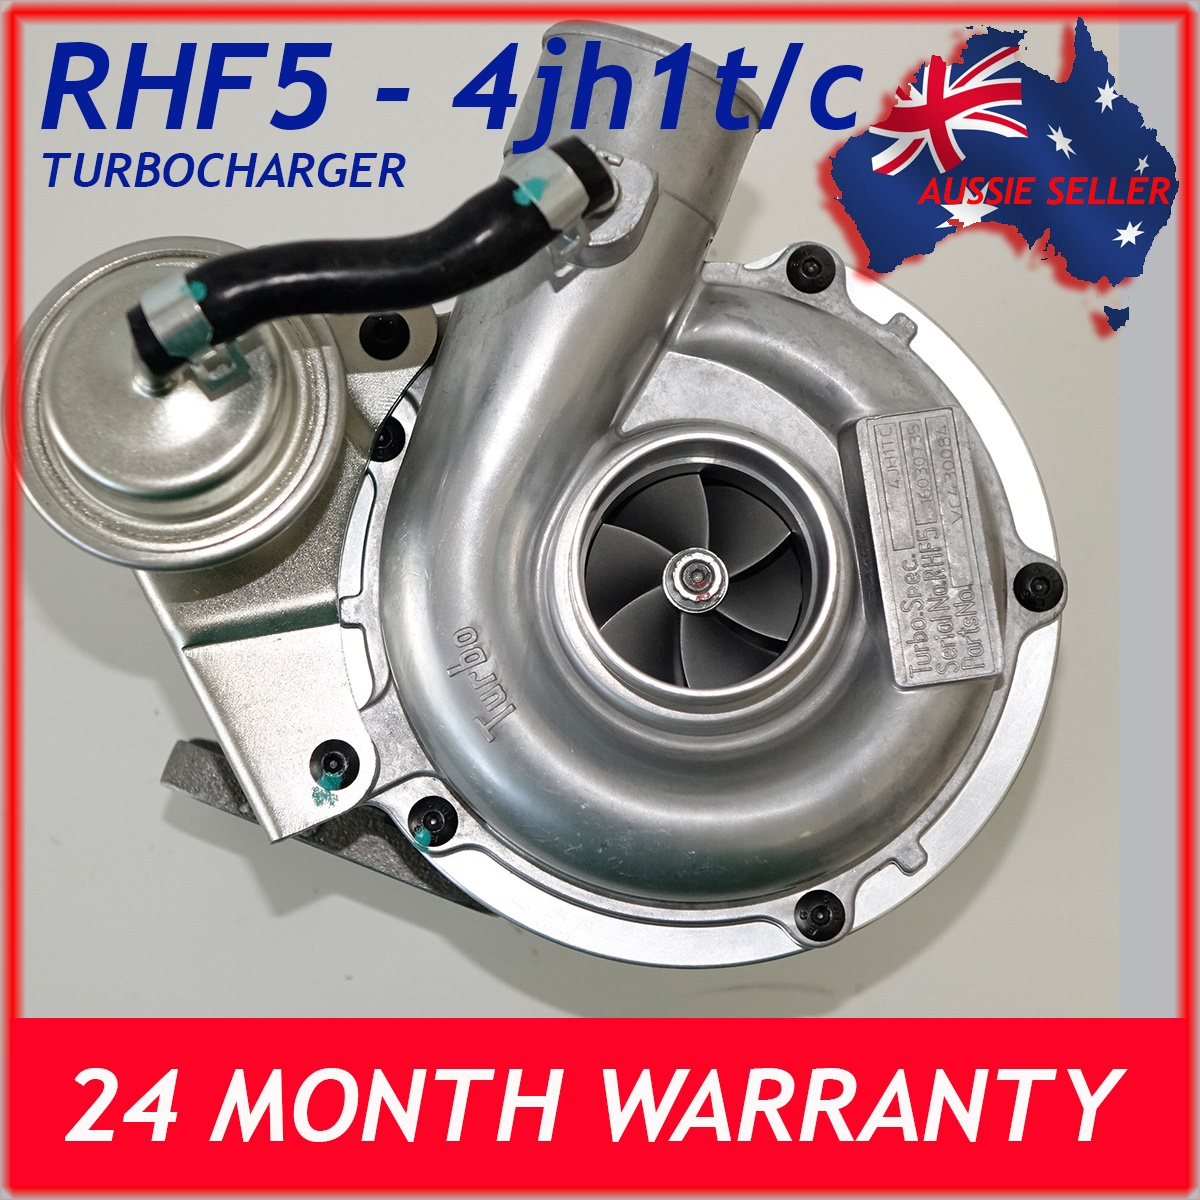 holden-isuzu-rodeo-rhf5-vidw-viek-4jhit-turbocharger-compressor-main1